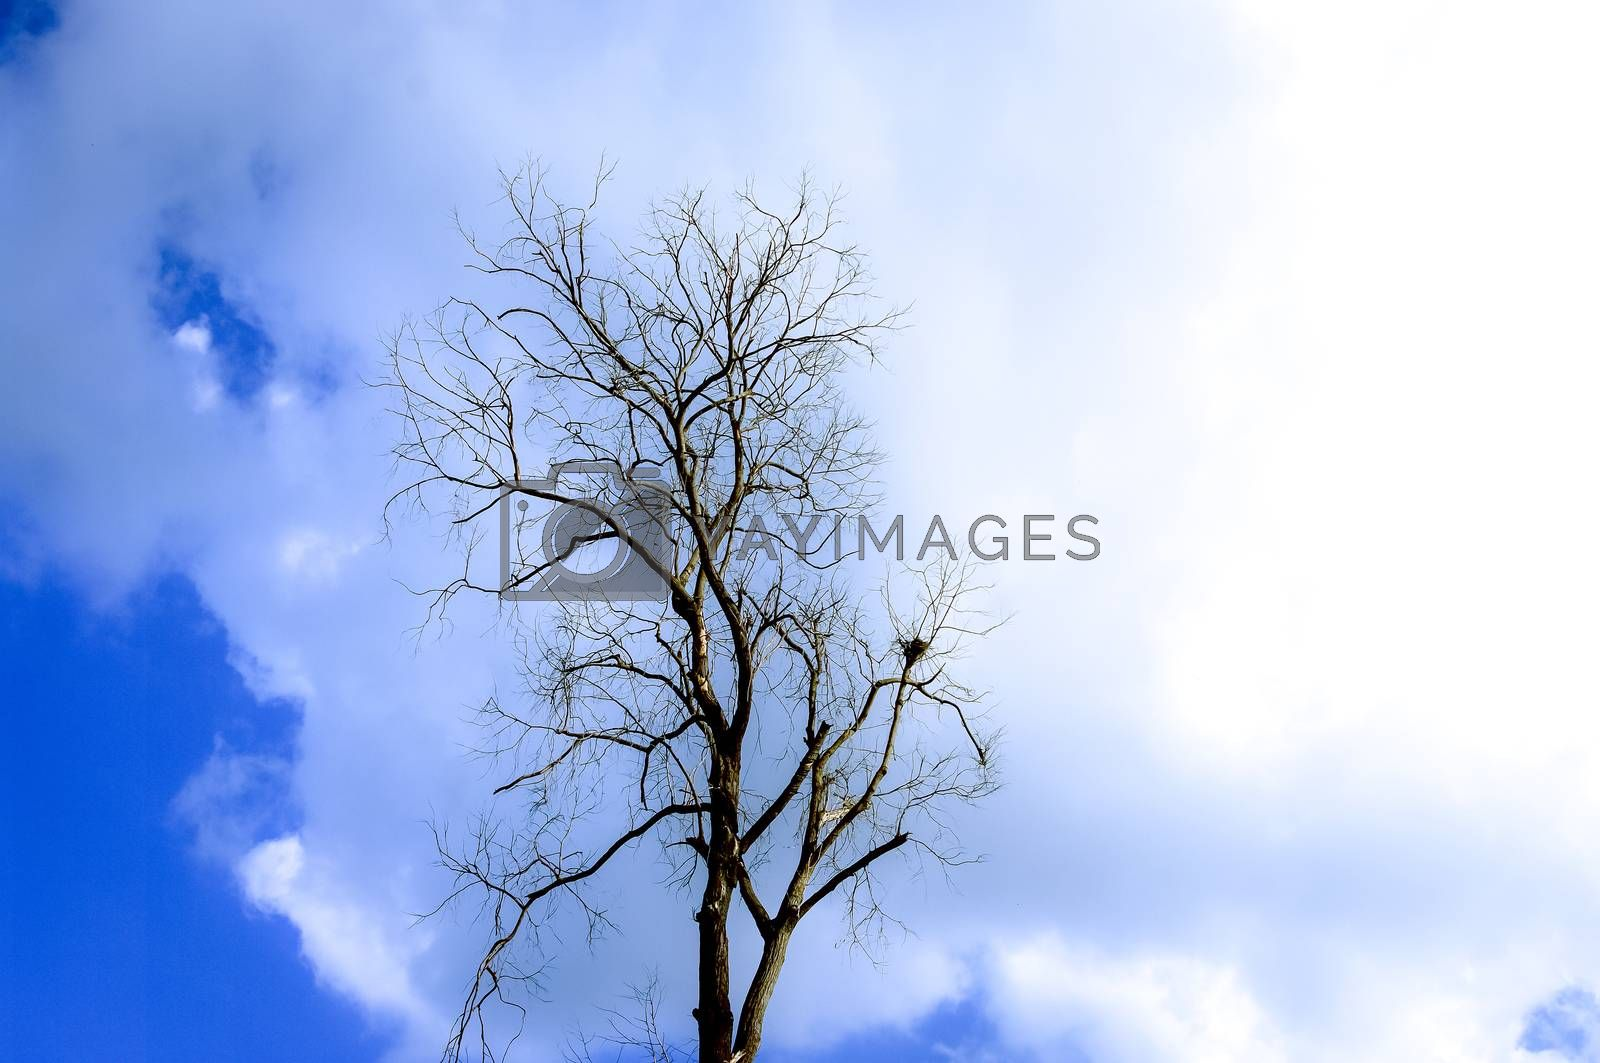 Dried tree with clouds in blue sky background